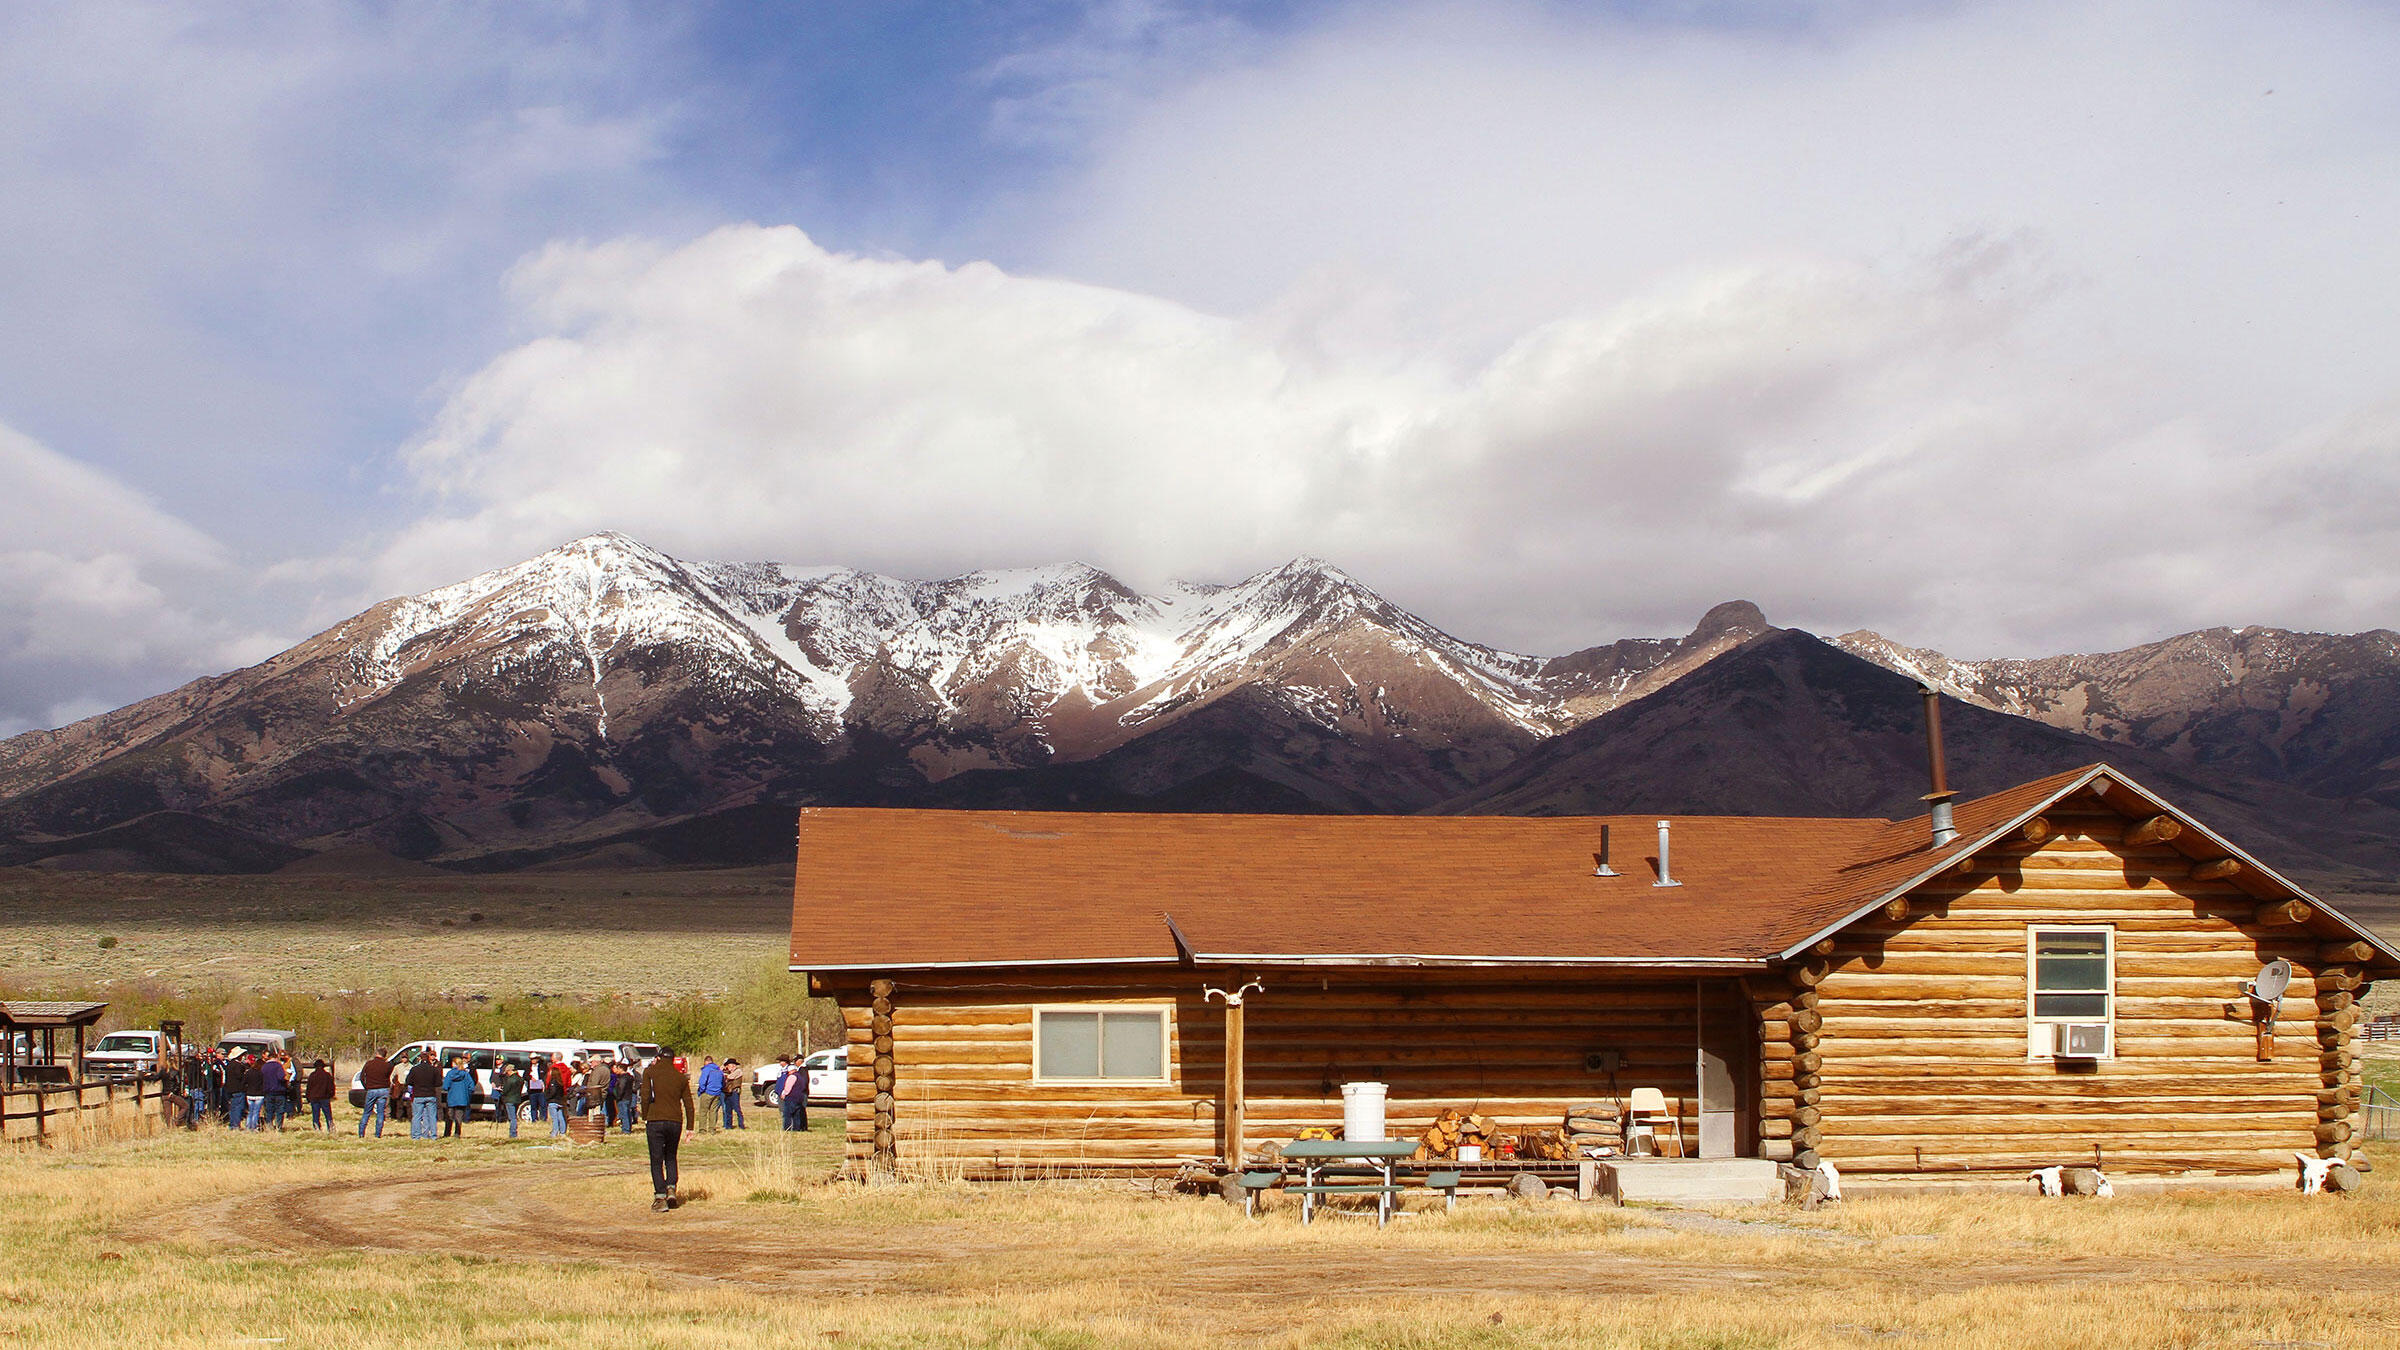 The TL Bar Ranch and Donner Spring in Box Elder County, Utah, is owned by ranchers Diane and Jay Tanner. Scott Root